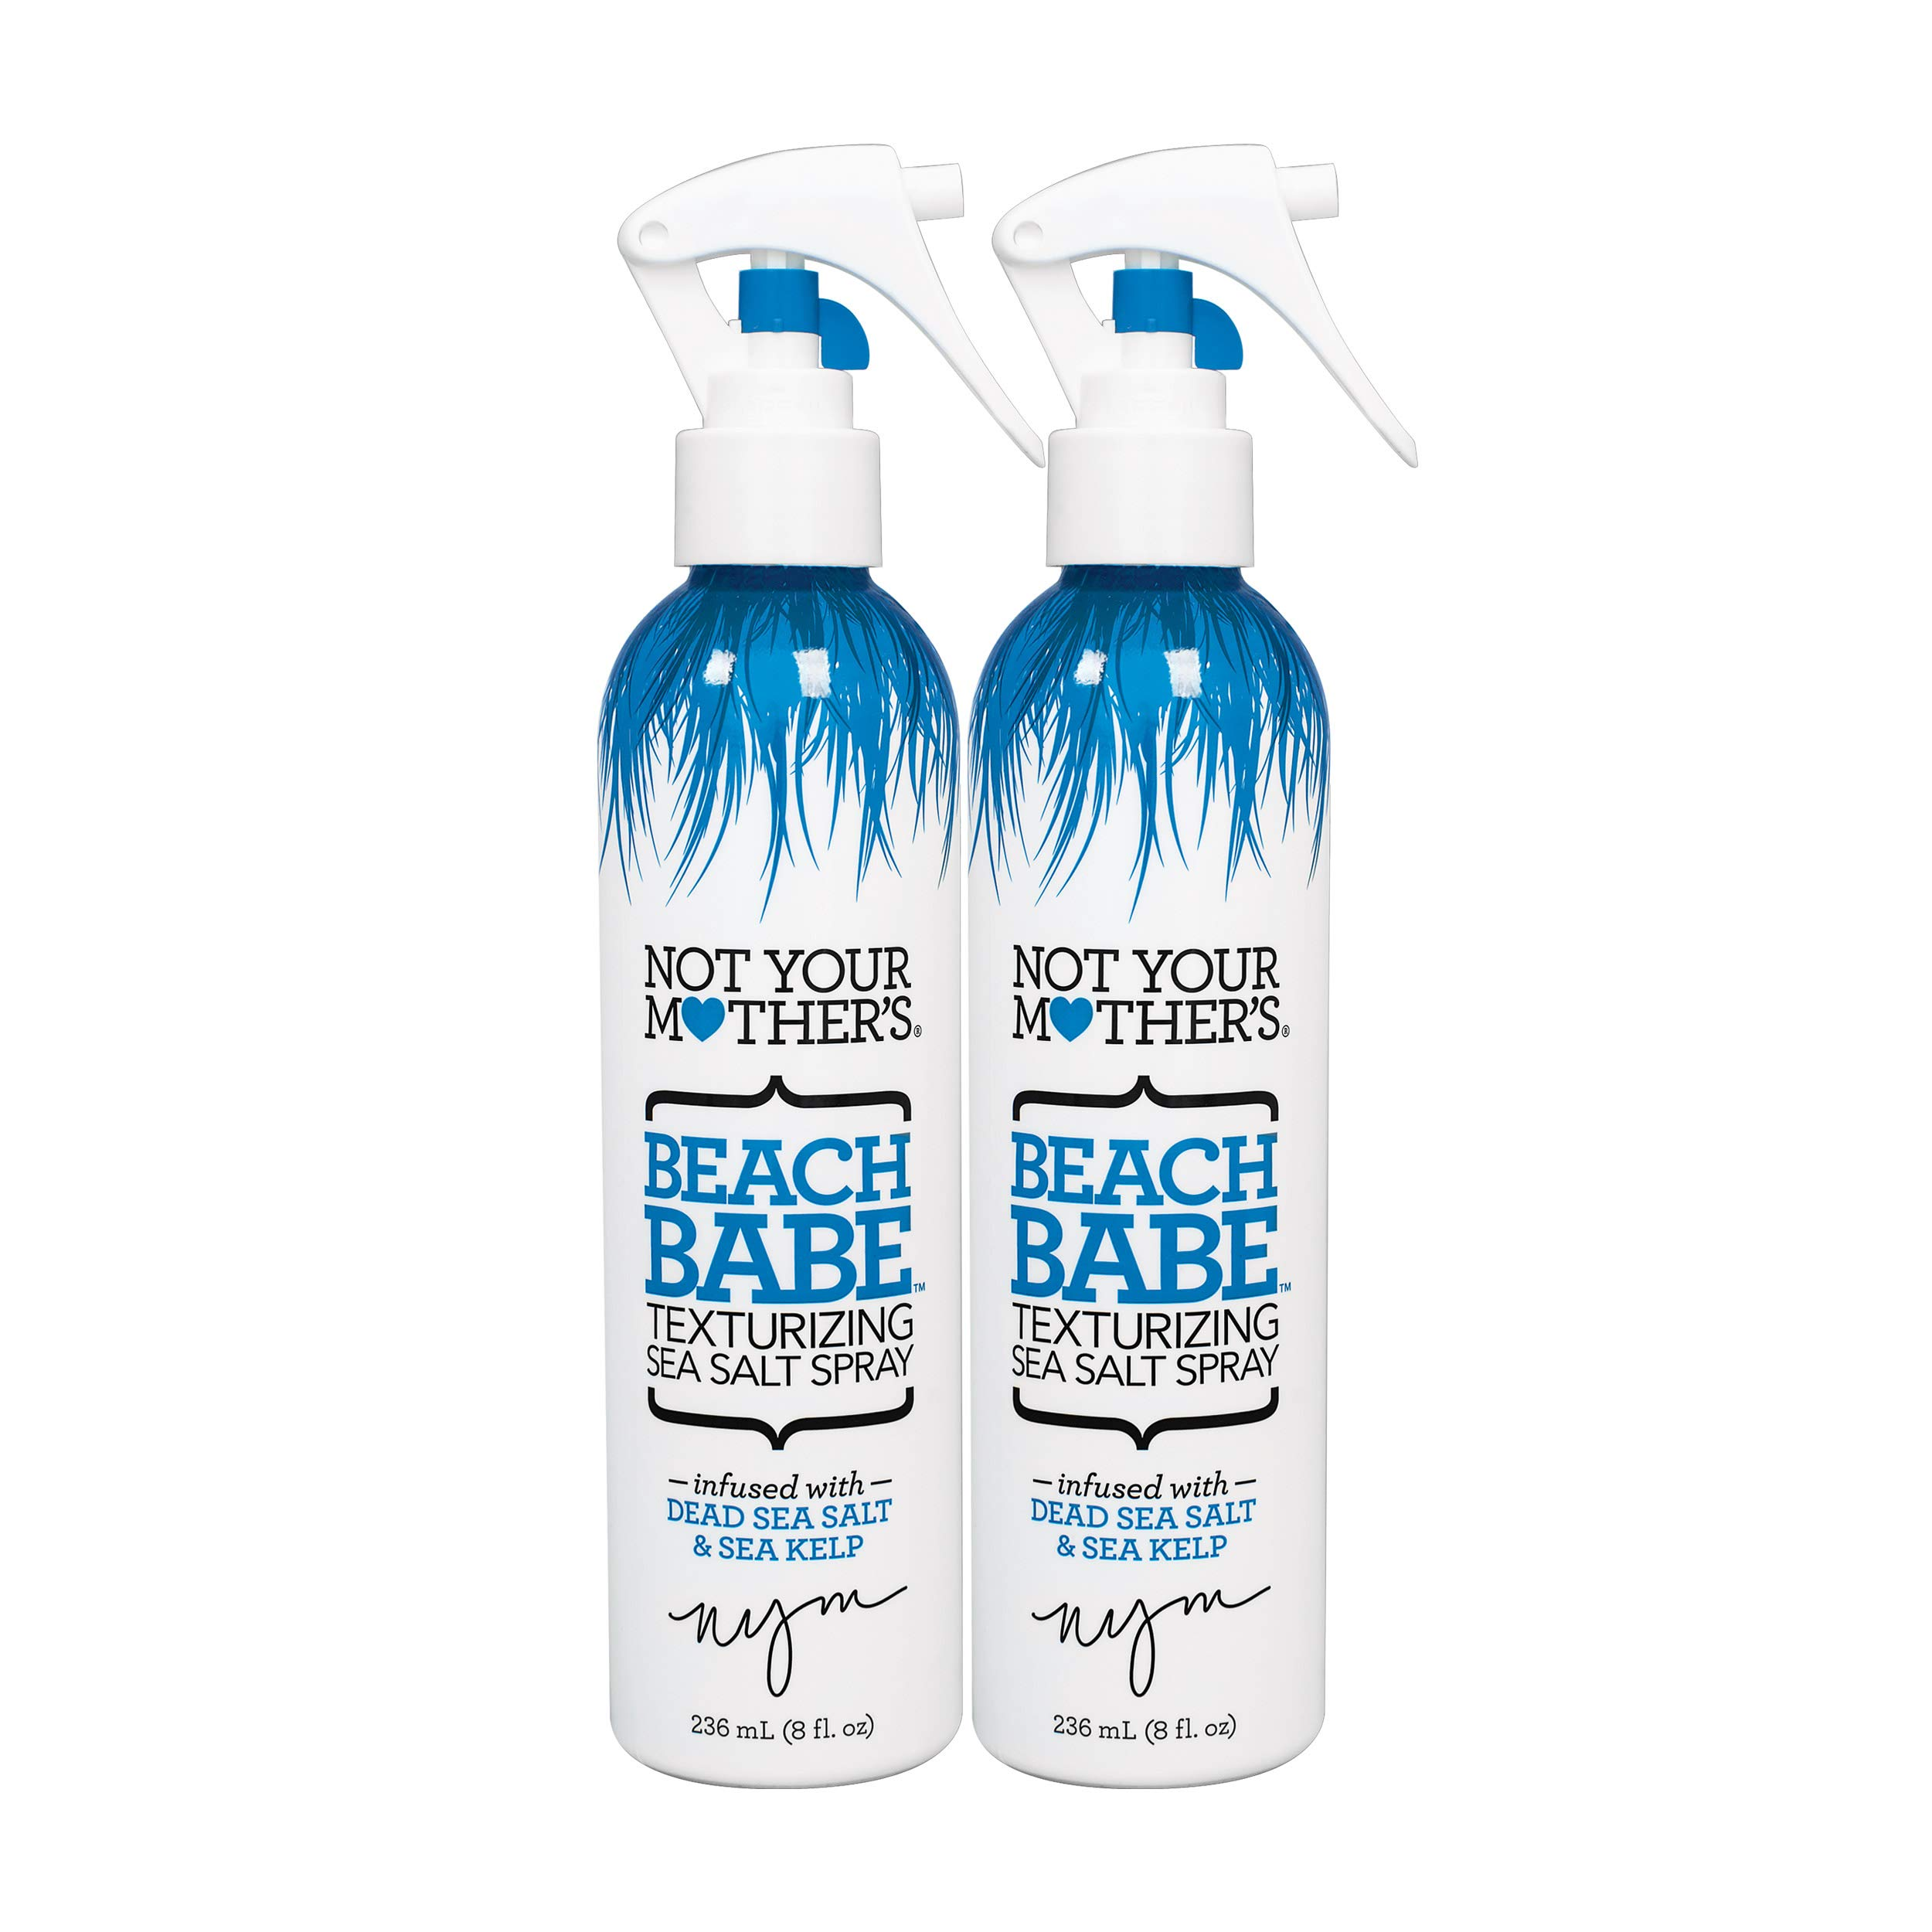 Amazon.com : Not Your Mother's Beach Babe Texturizing Hair